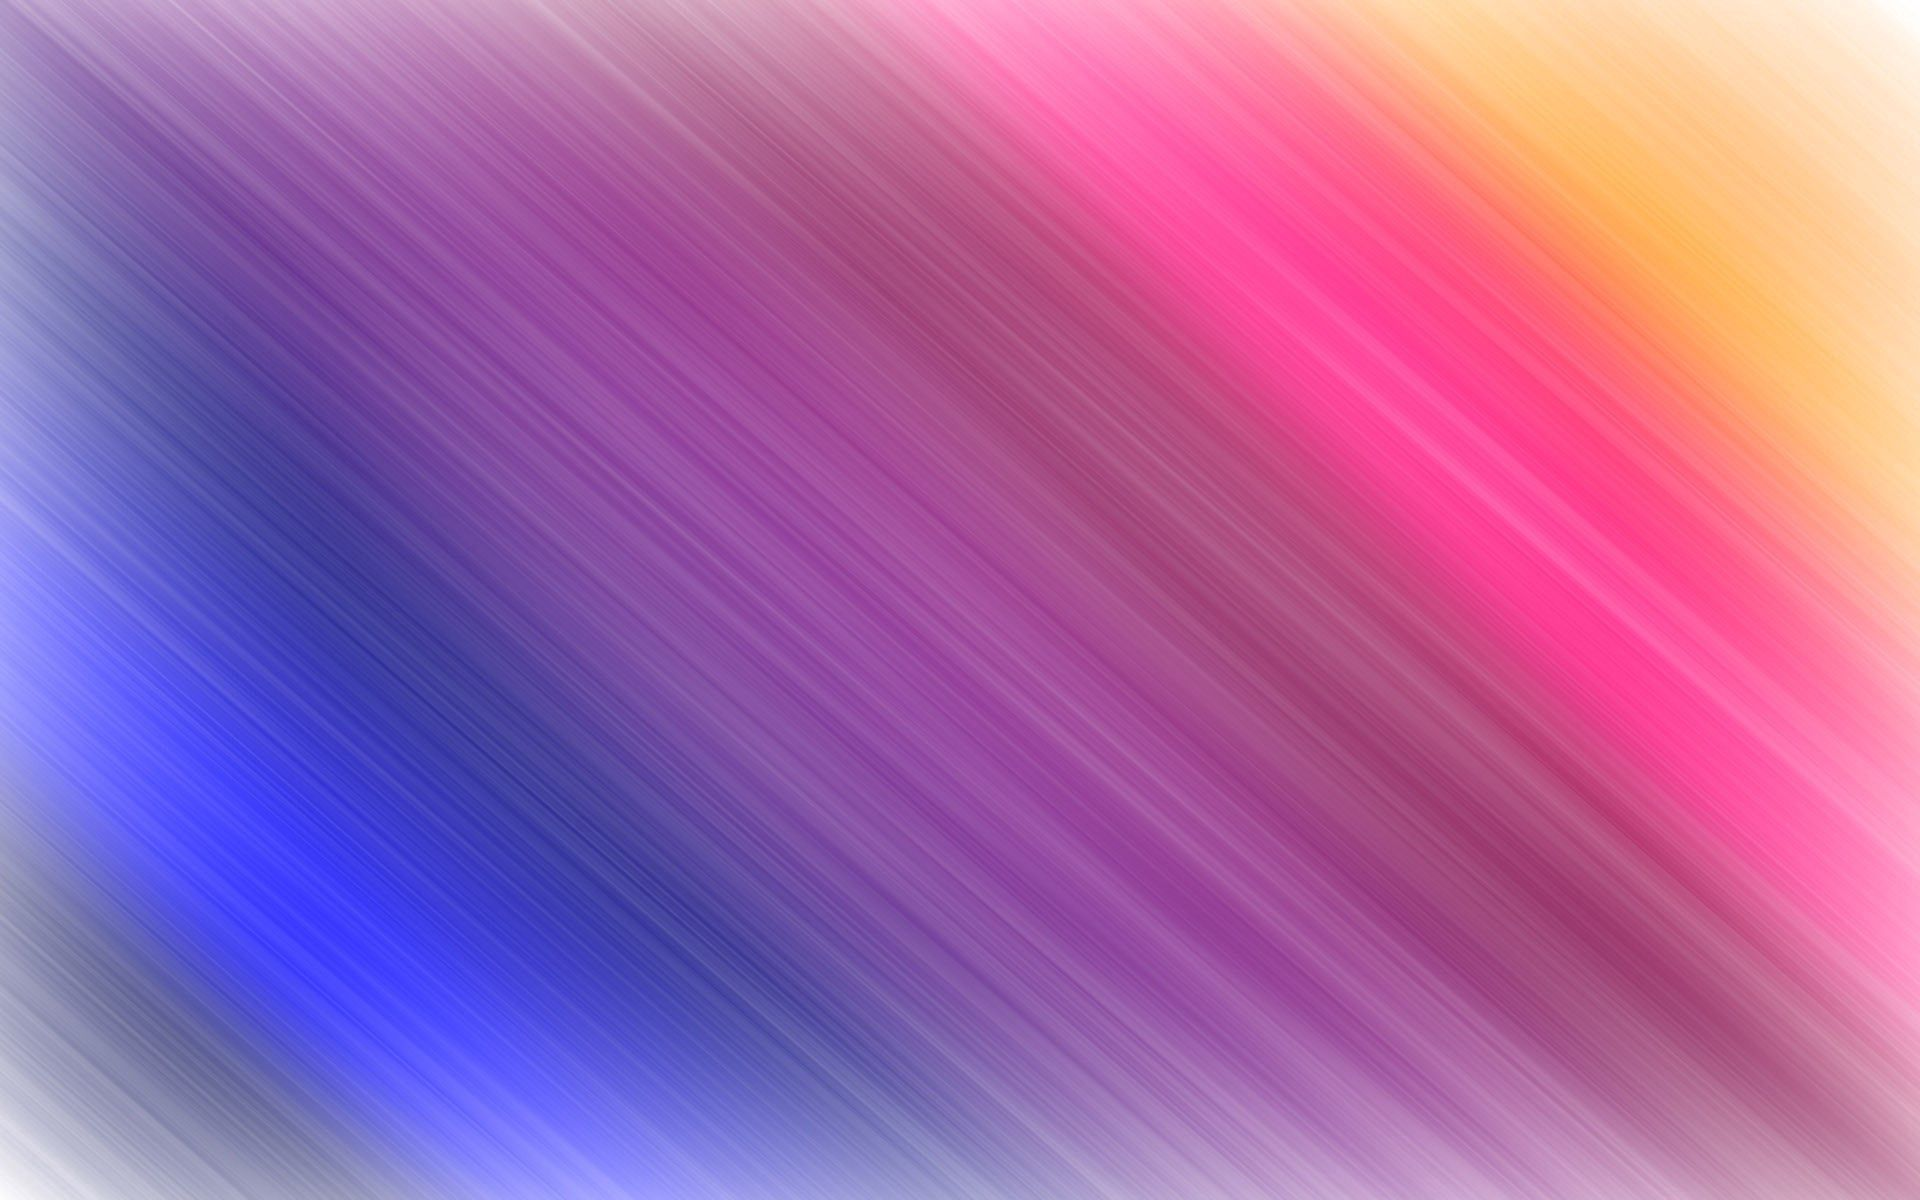 62829 download wallpaper Multicolored, Abstract, Bright, Motley, Lines, Obliquely screensavers and pictures for free